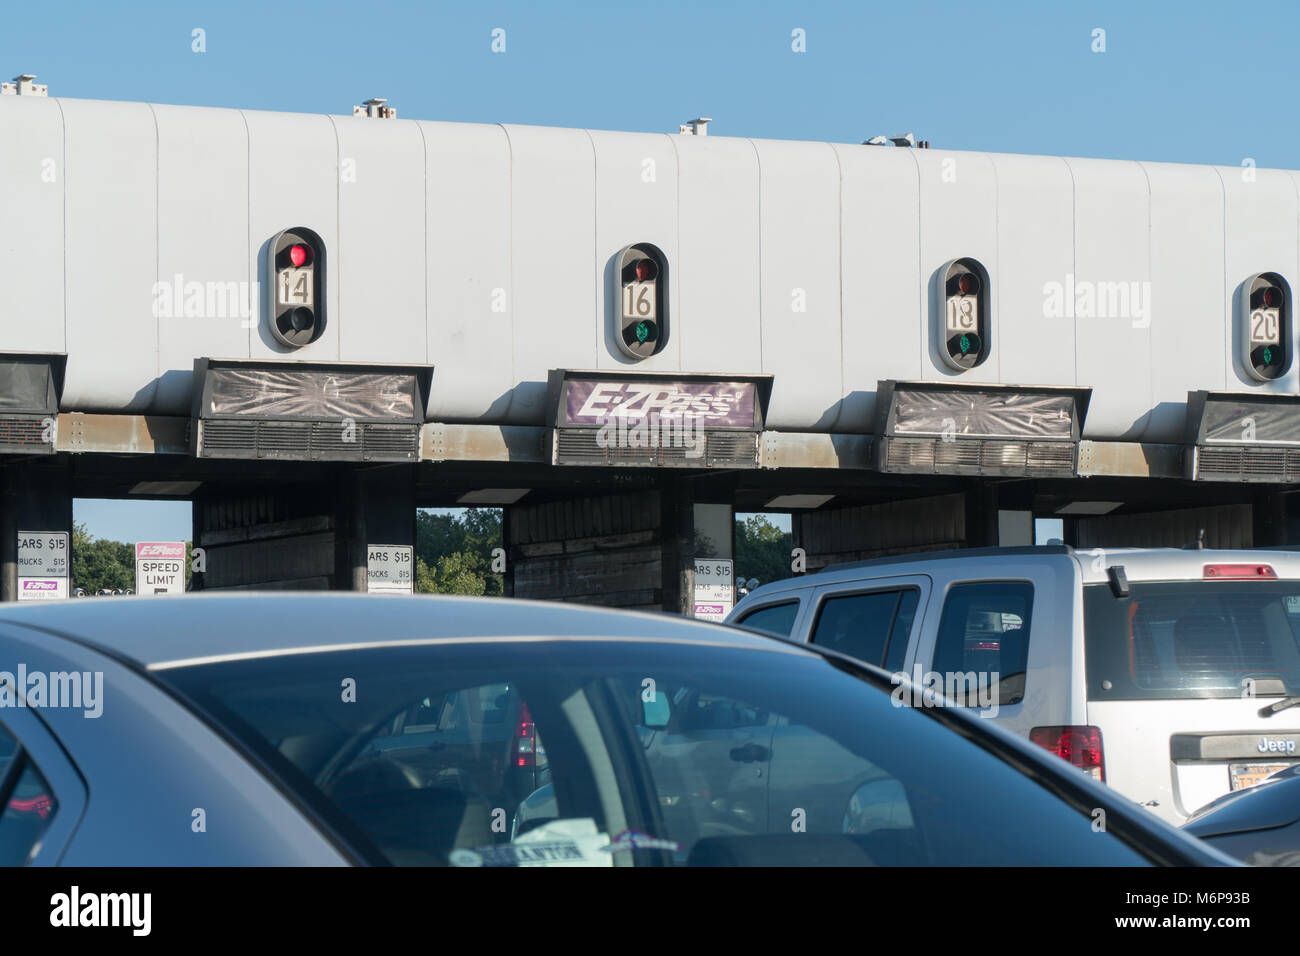 New Jersey Turnpike Stock Photos & New Jersey Turnpike Stock Images